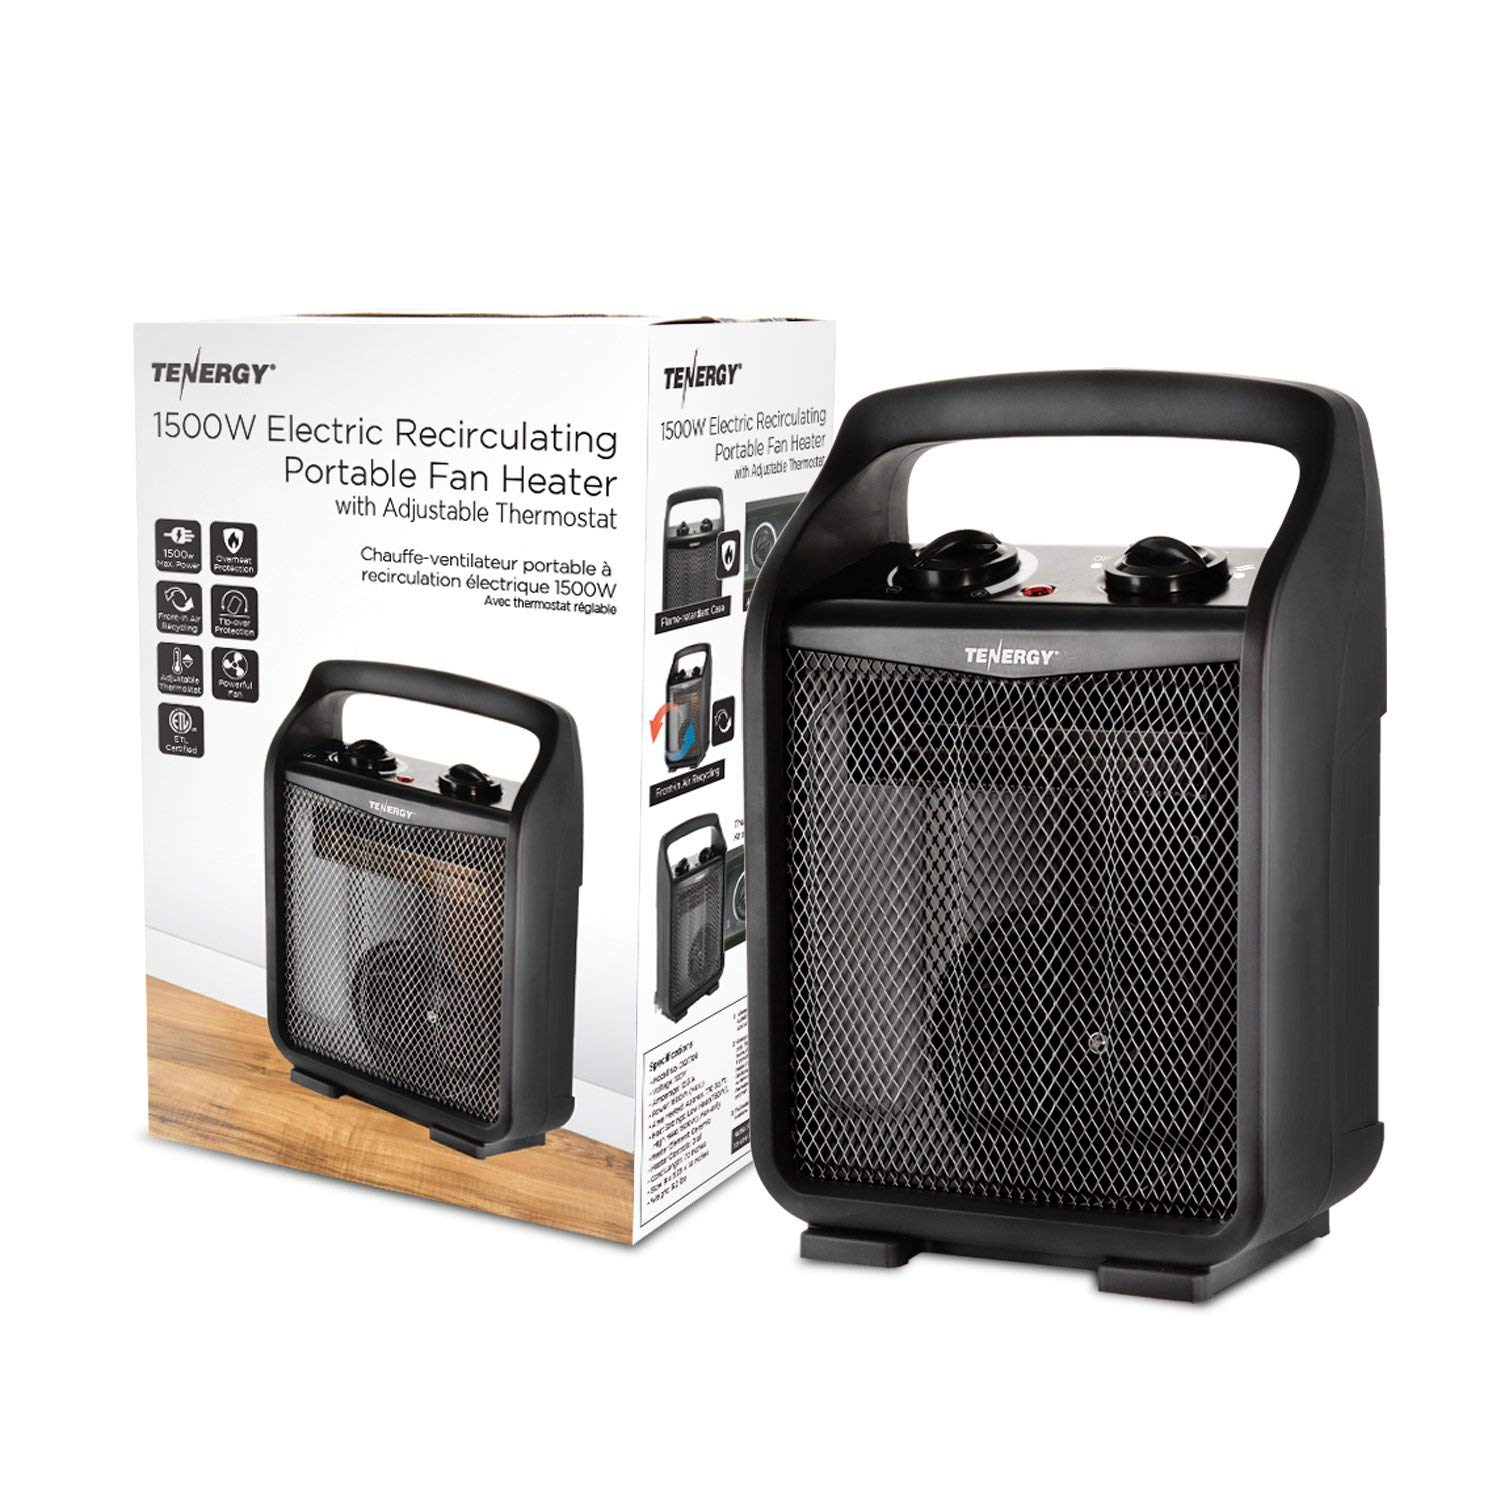 Tip-Over /& Overheat Protection Tenergy 1500W//750W Portable Space Heaters with Adjustable Thermostat Recirculation Air Electric Fan Heater with Auto Shut Off Switch